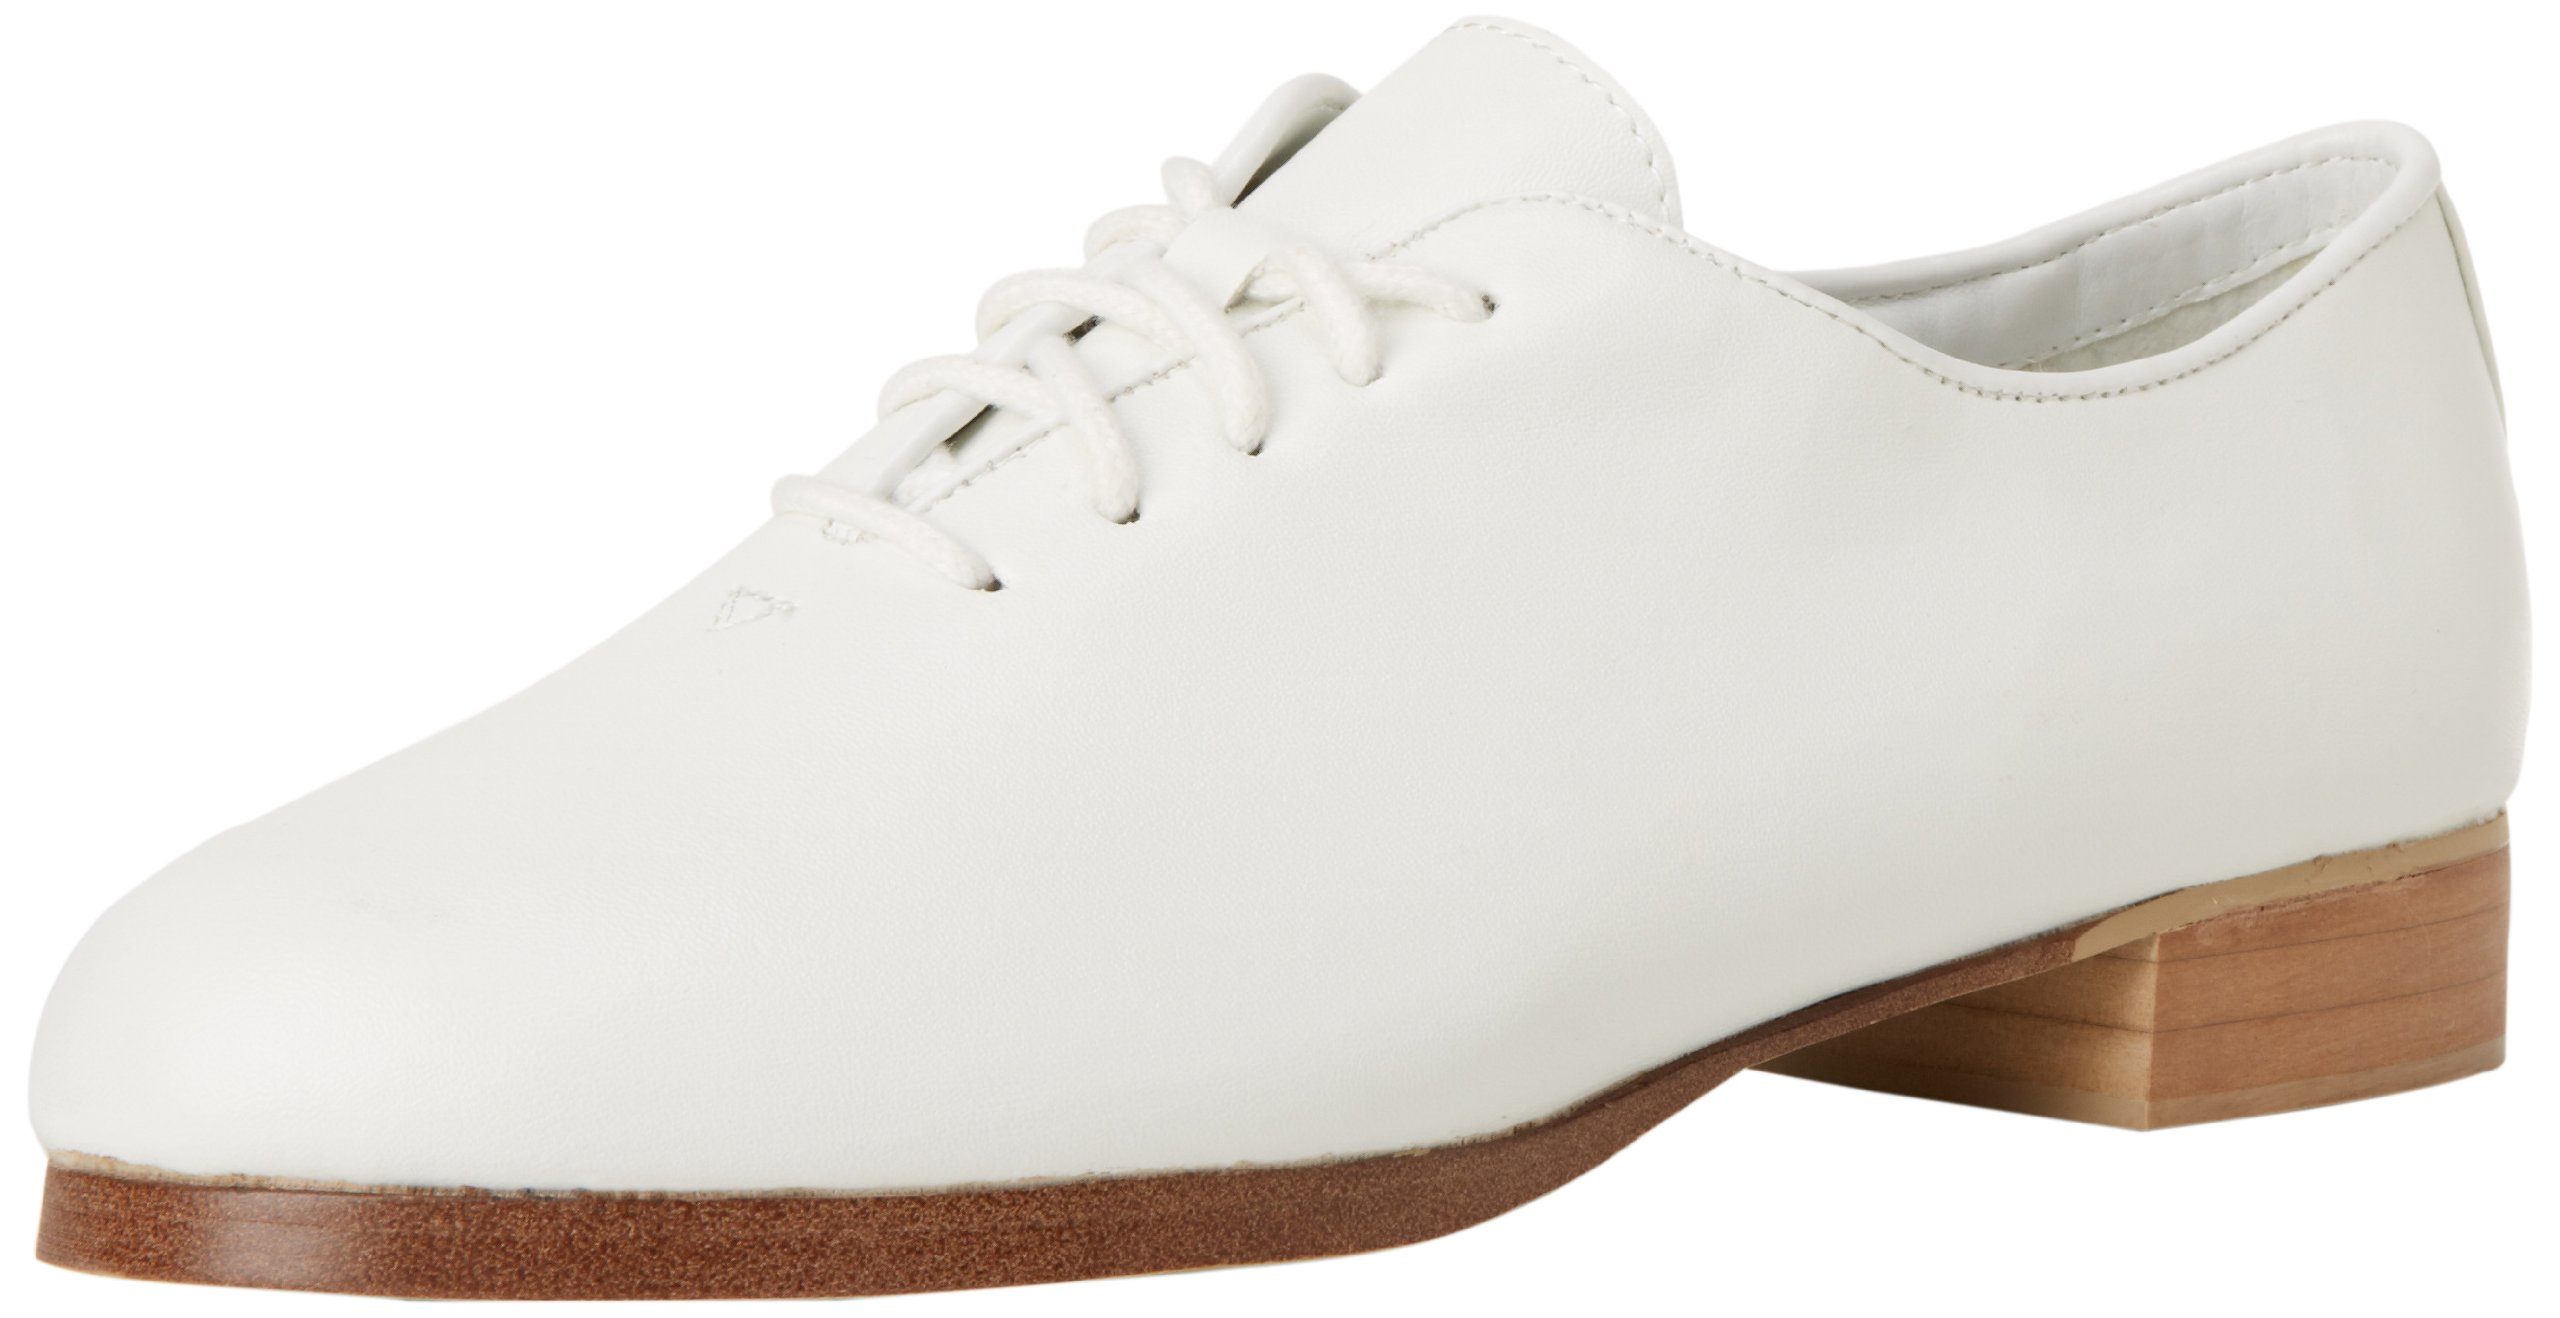 Dance Class Women's PCM401 Full Sole Jazz/Clogging Oxford,White,8.5 M US